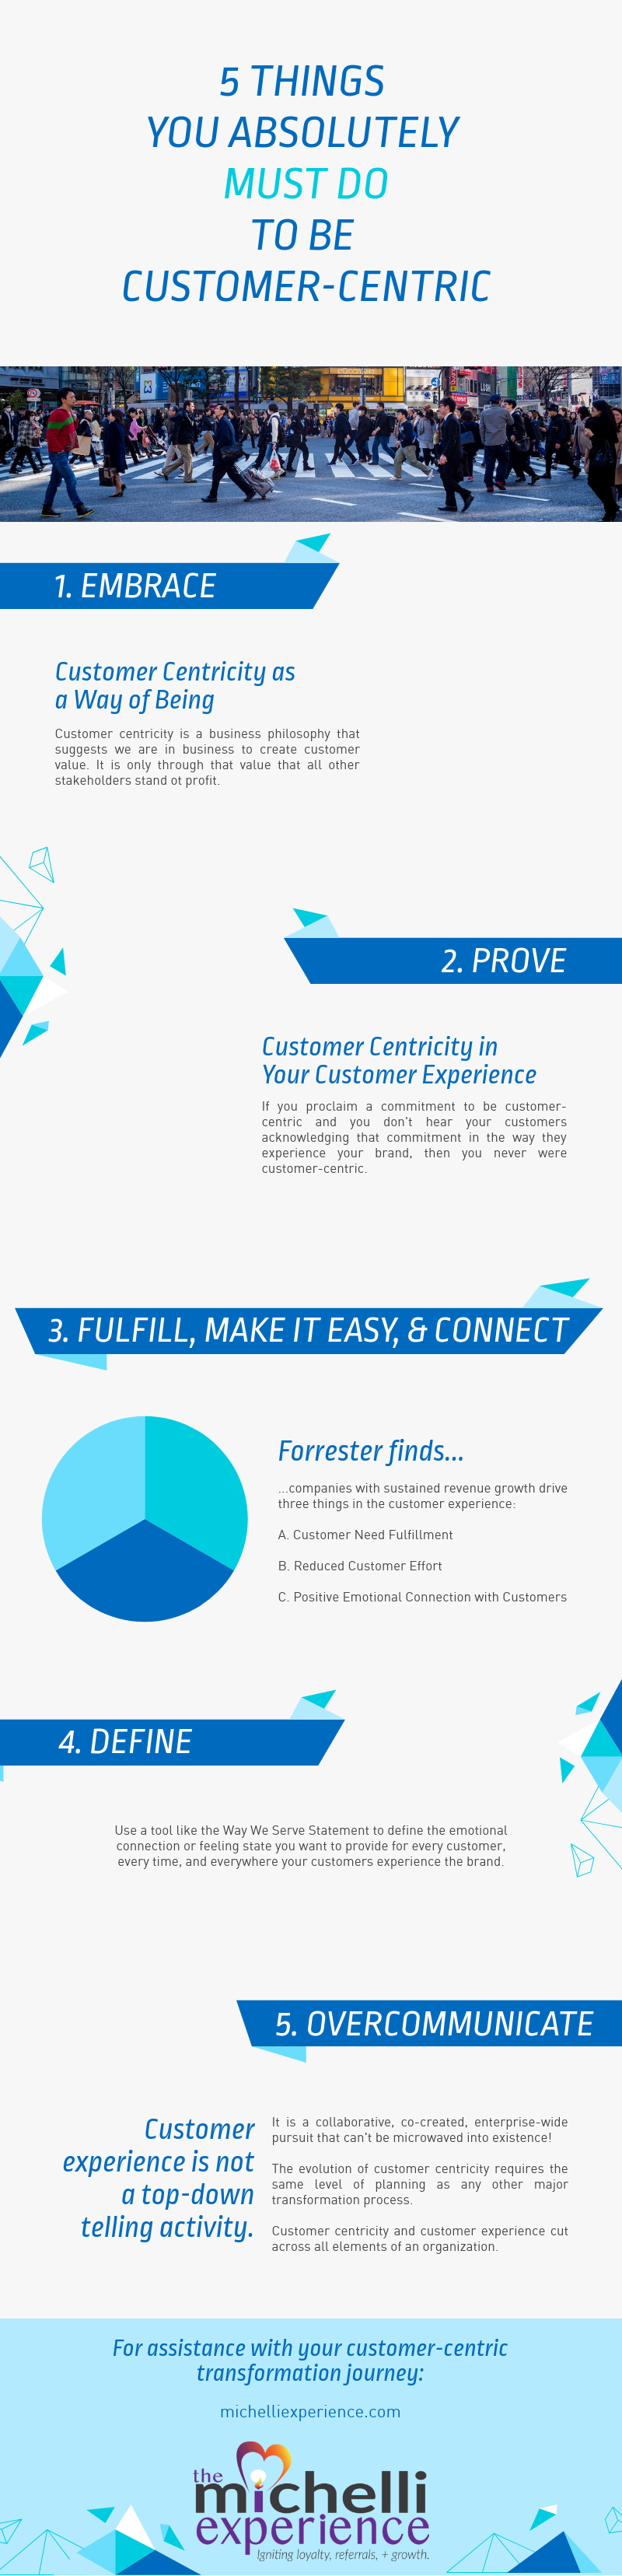 customer experience, customer centricity